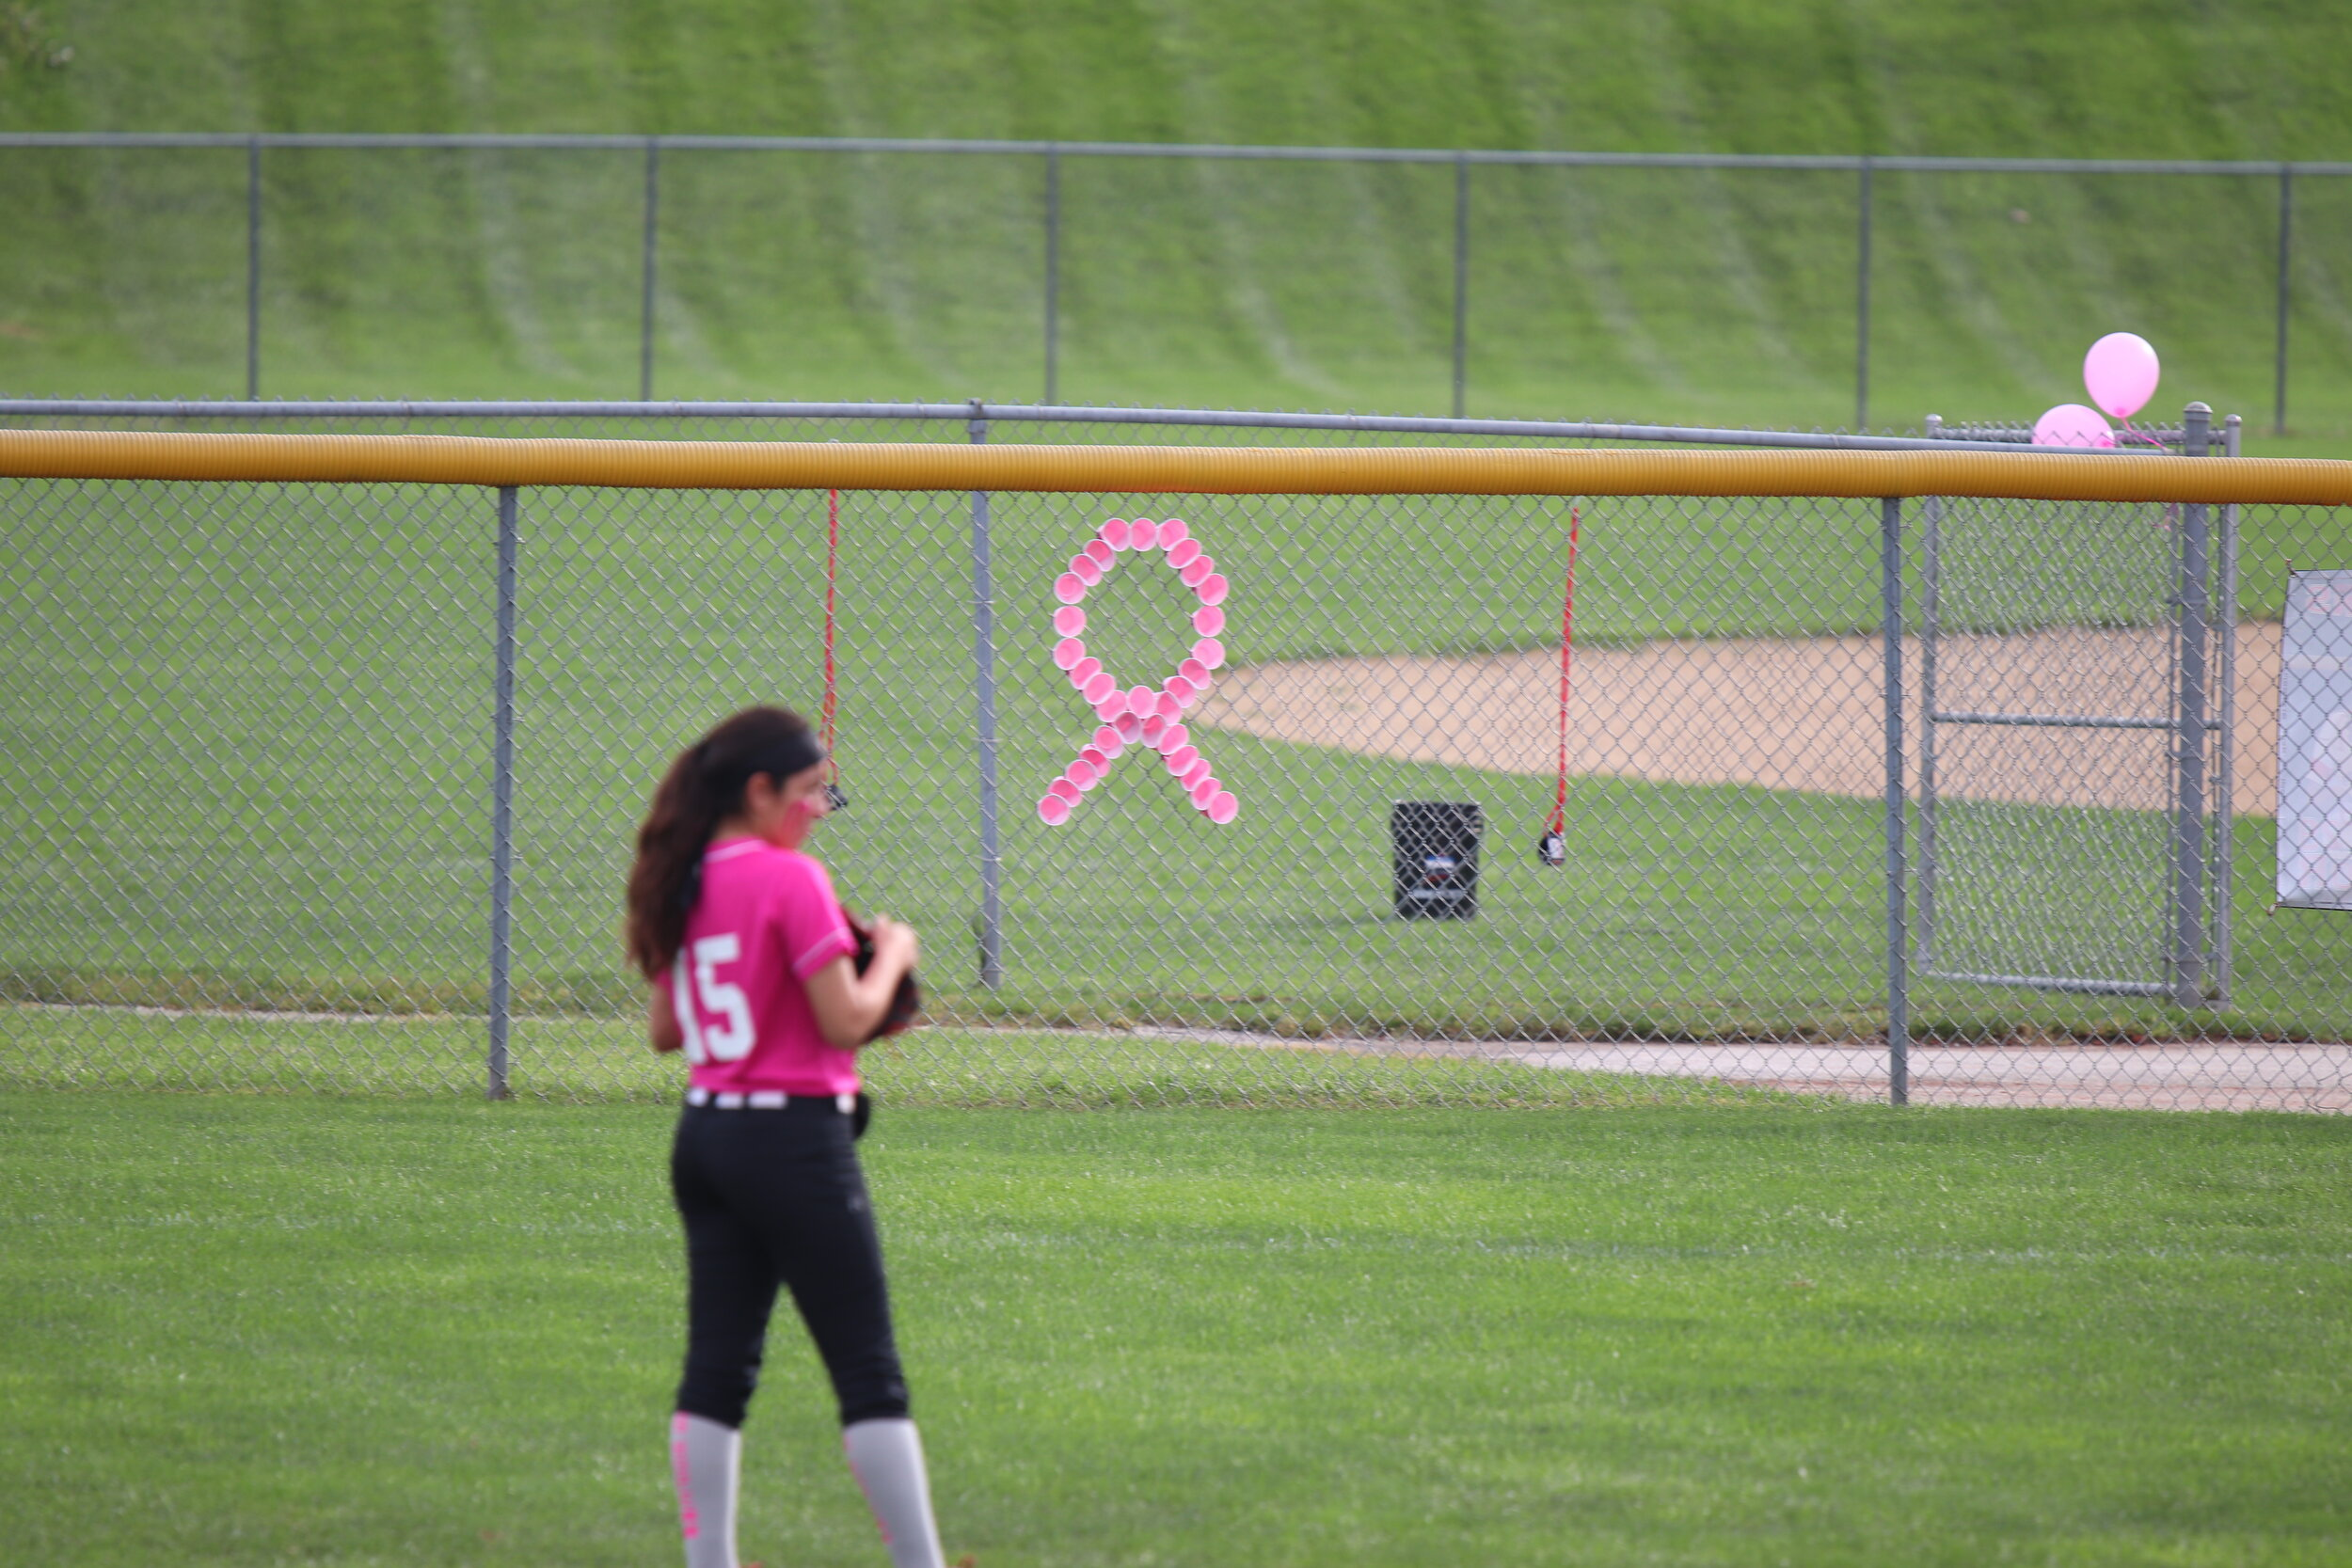 CODY THORN/Citizen photo Park Hill outfielder Nia Muniz stands in right field during a game on Thursday, Oct. 3. The hosted a 'Pink Out' game for the third straight year to honor the legacy of the late Jill (Bailey) Heckman.